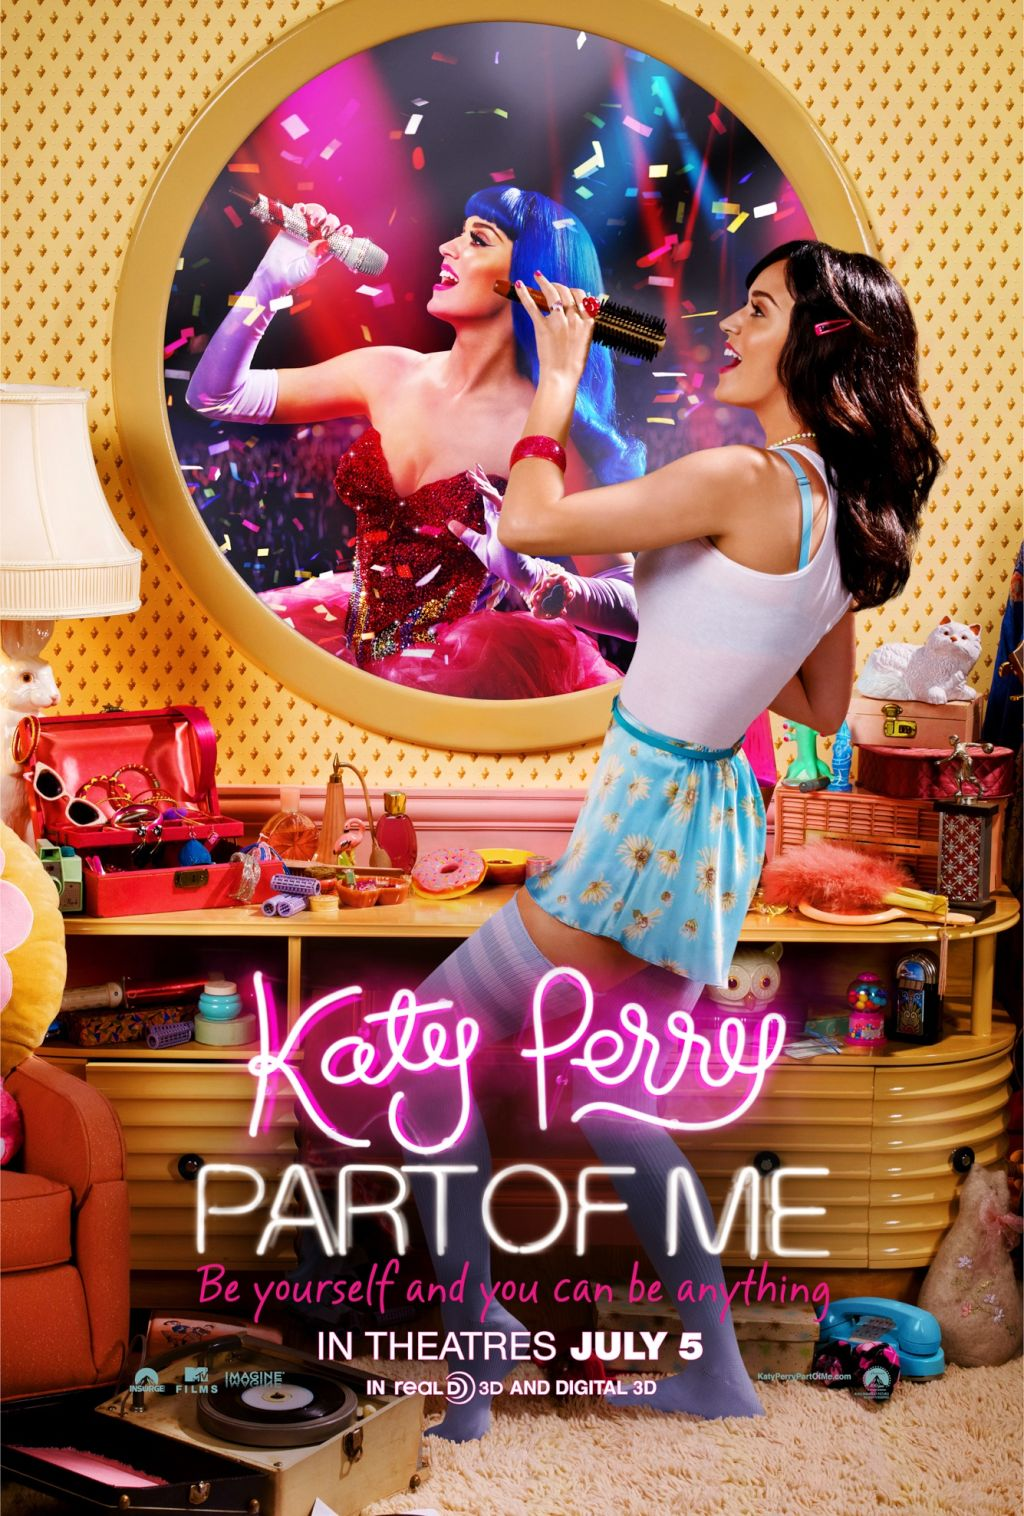 http://2.bp.blogspot.com/-uaTqvdam1gI/T_ff73ib2wI/AAAAAAAAOMU/1AmJo6EQd2c/s1600/Katy-Perry-Part-Of-Me-3D-Movie-Poster.jpg